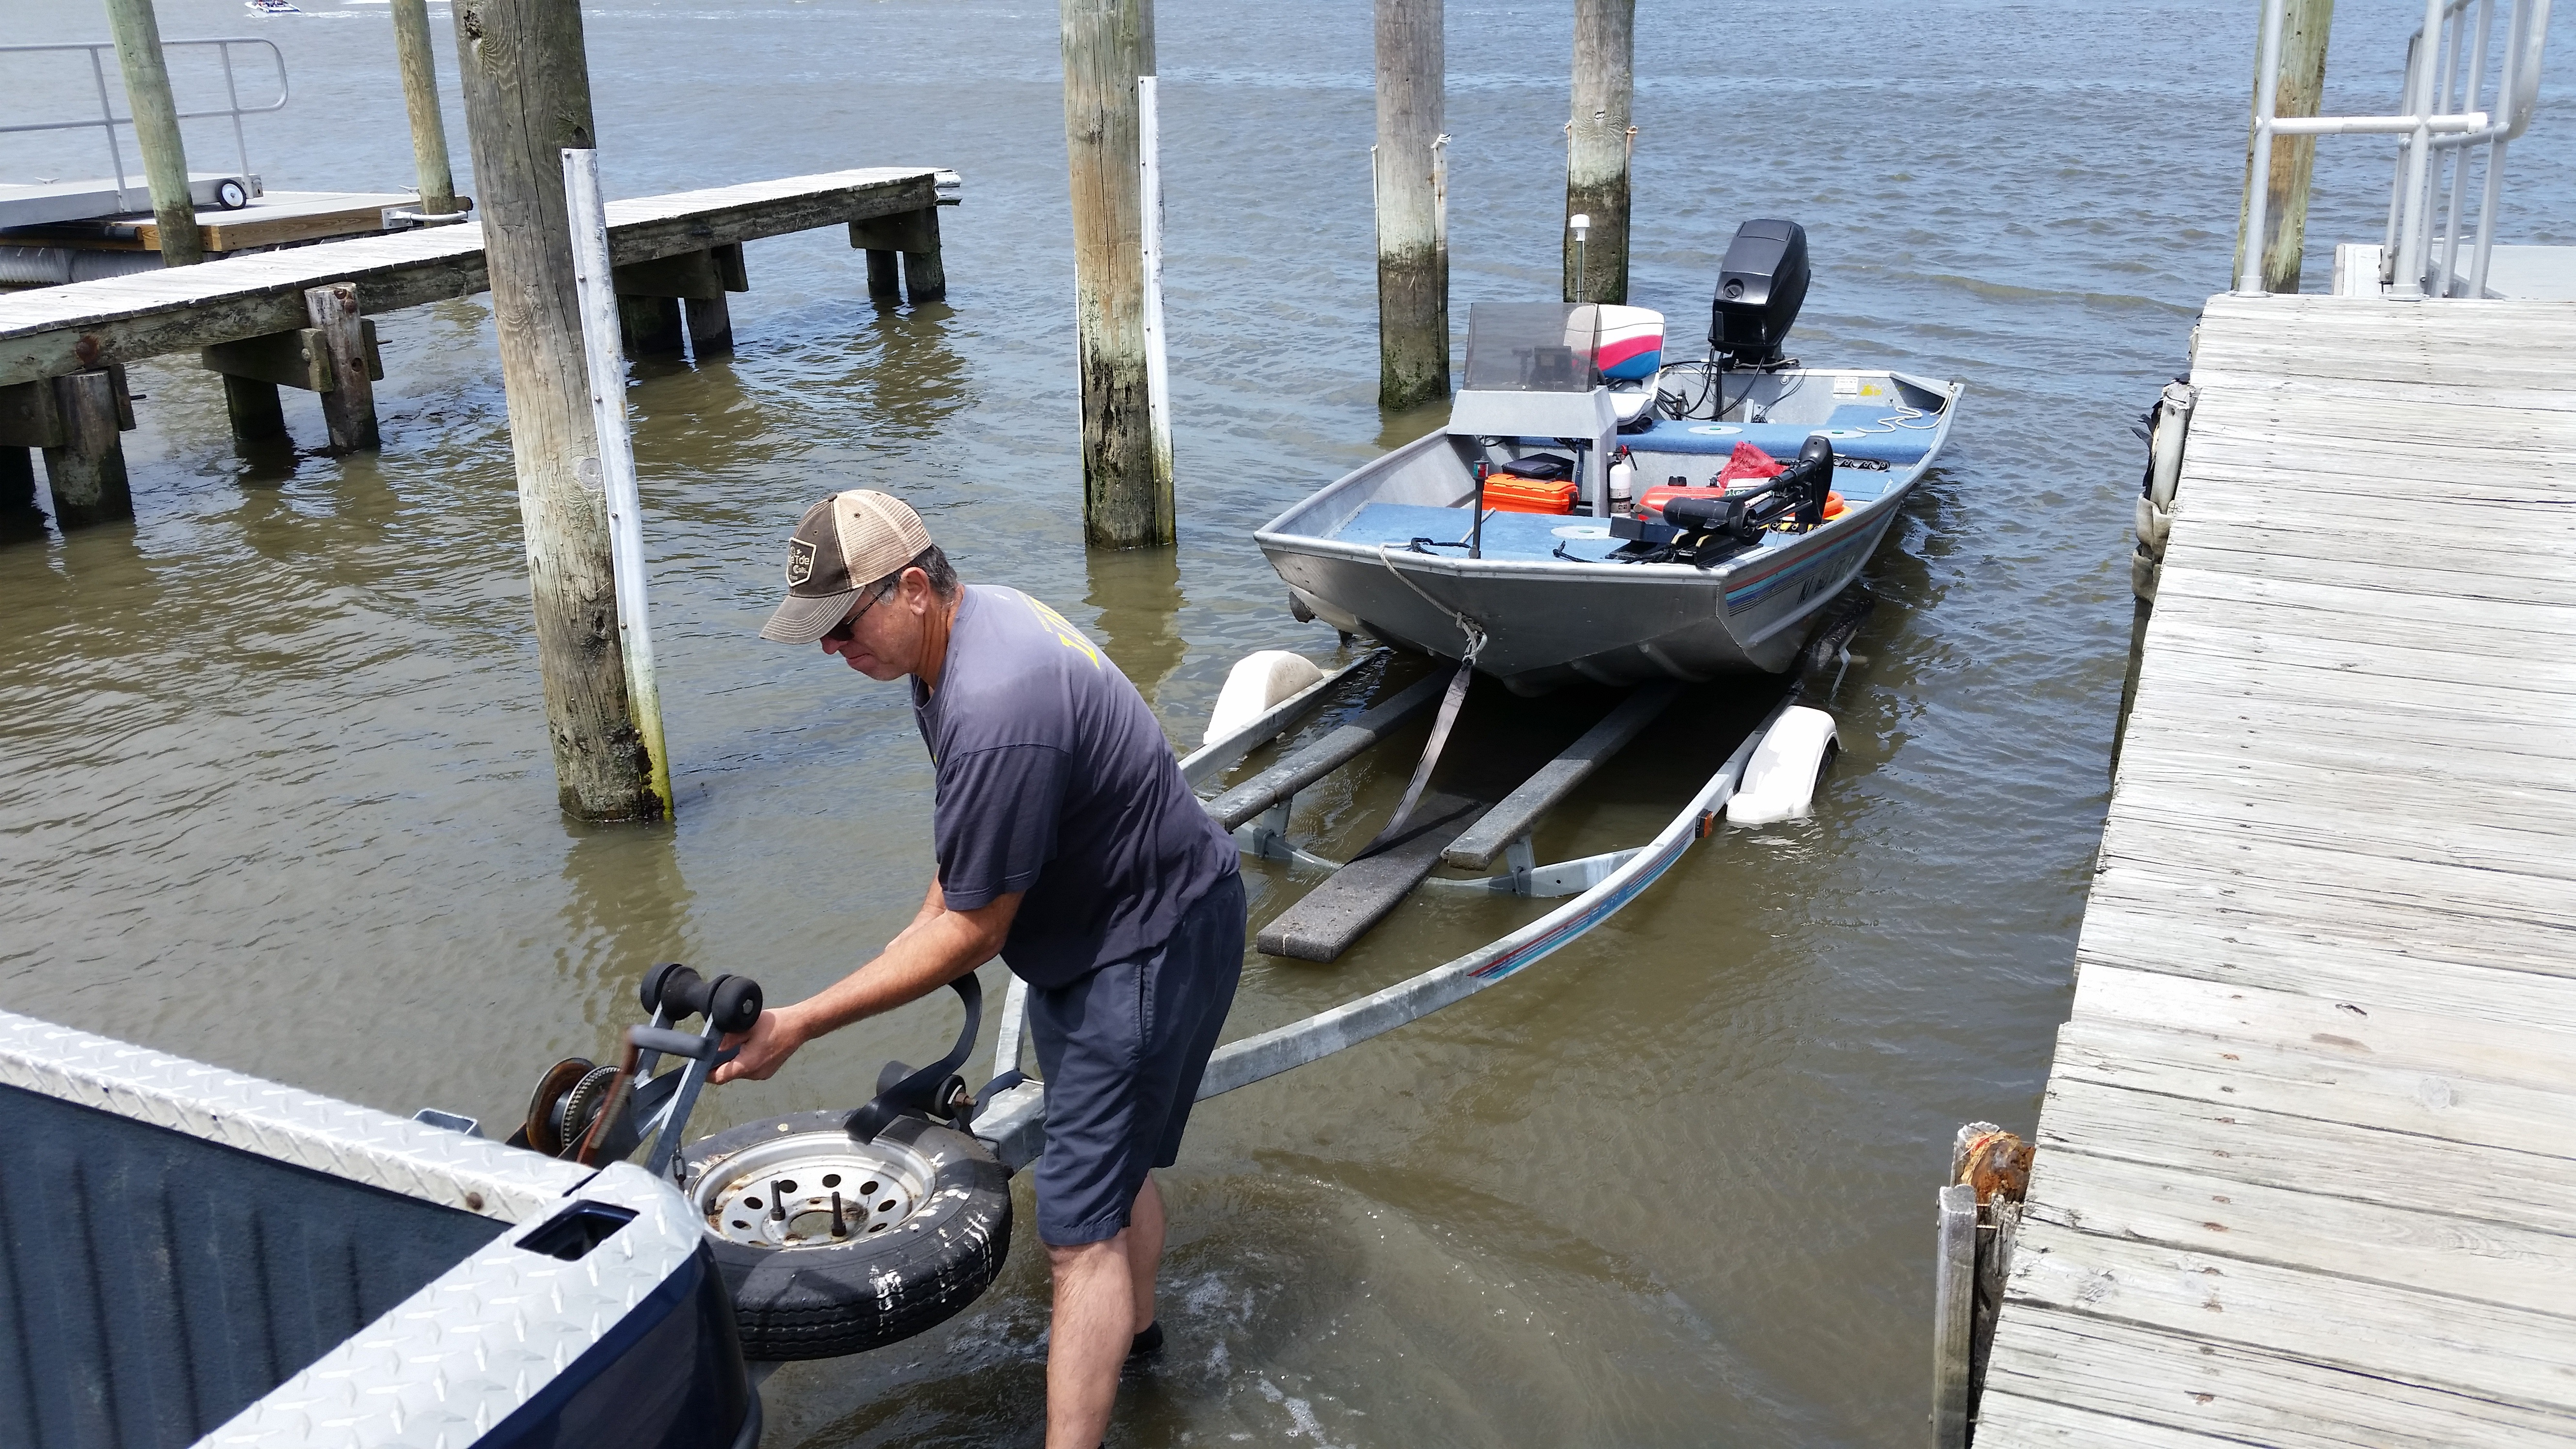 Ocean City Gives its Boat Ramp a Makeover | OCNJ Daily